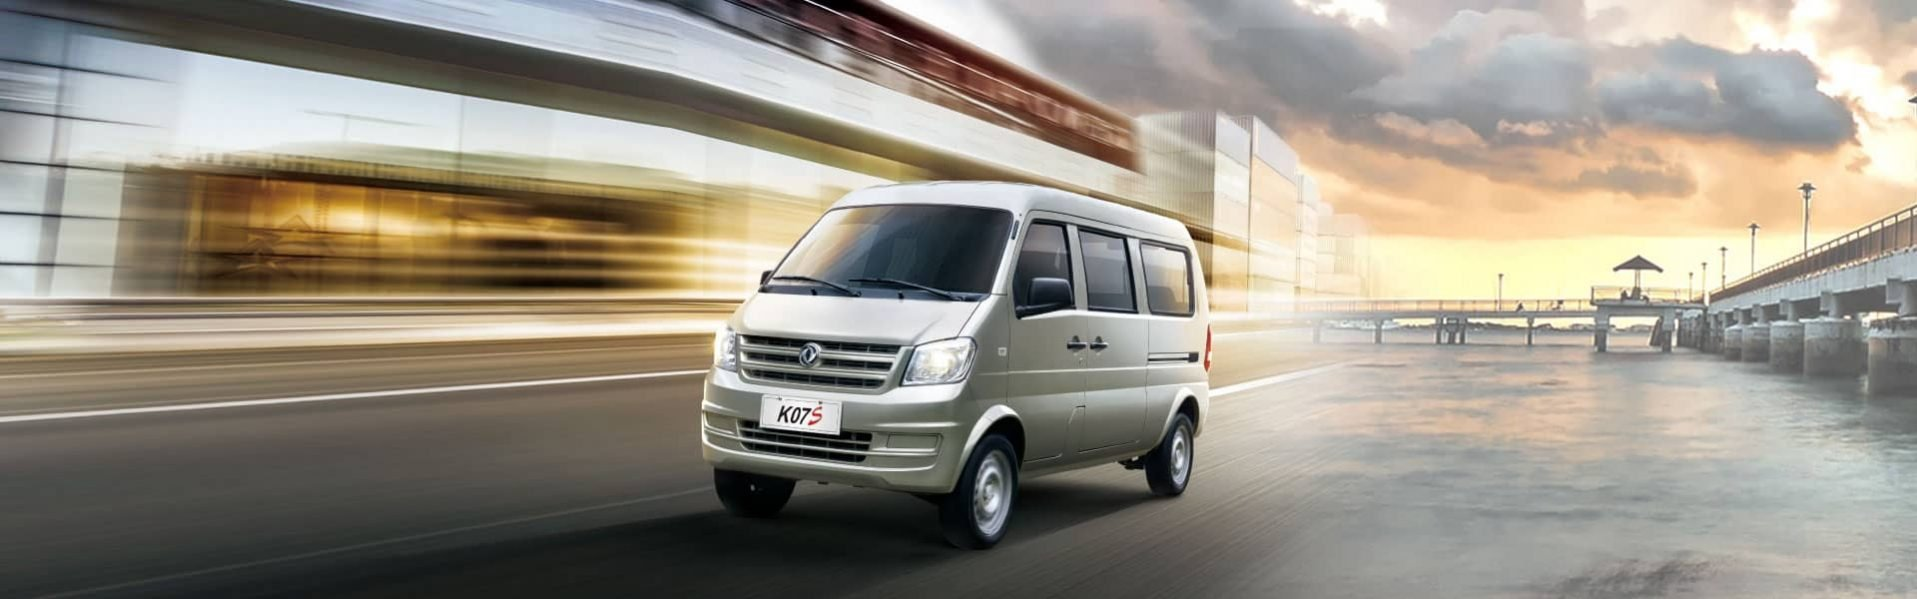 Dongfeng Minibus K07s